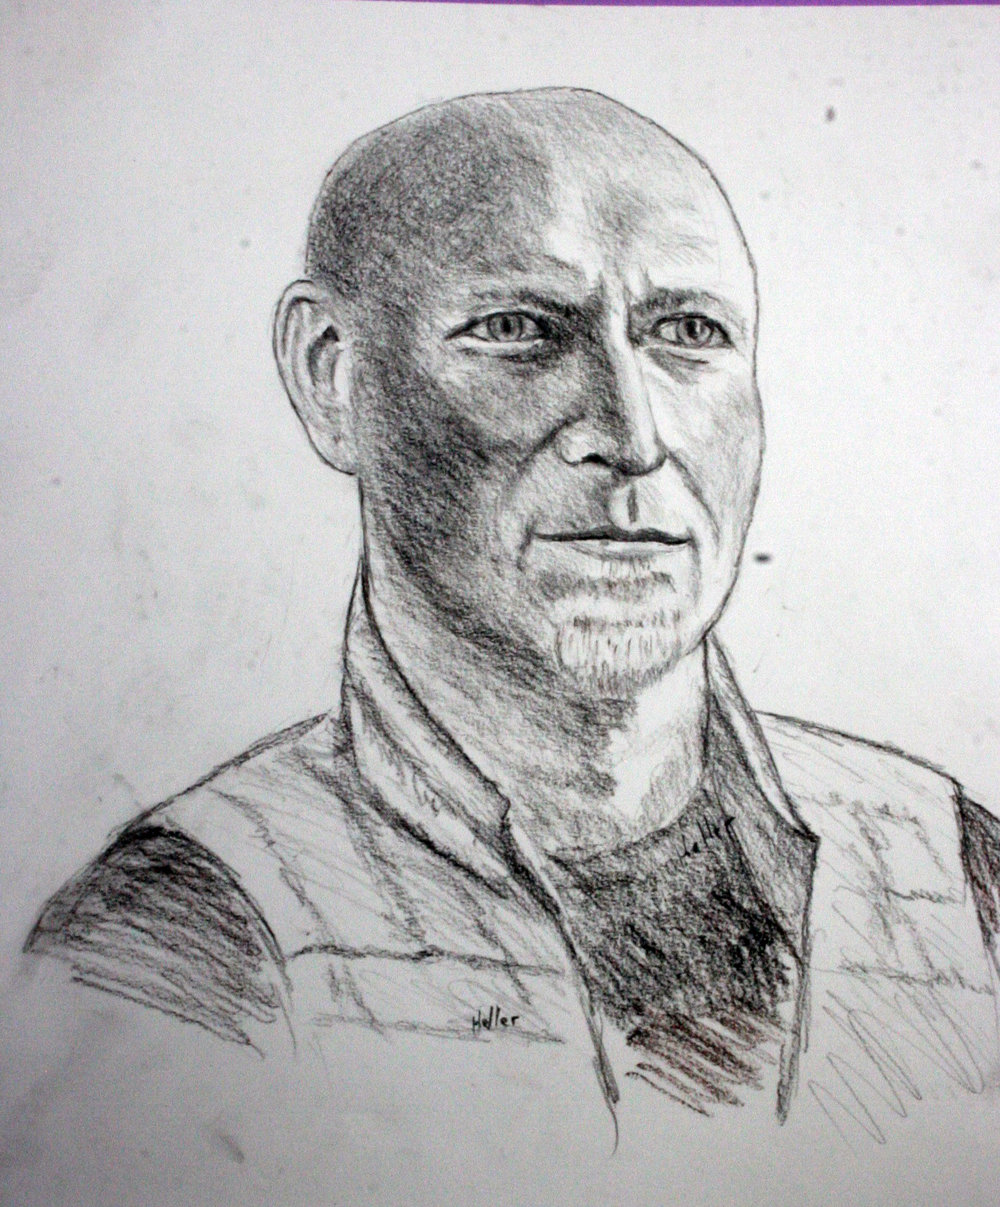 David Heller did this conte drawing.